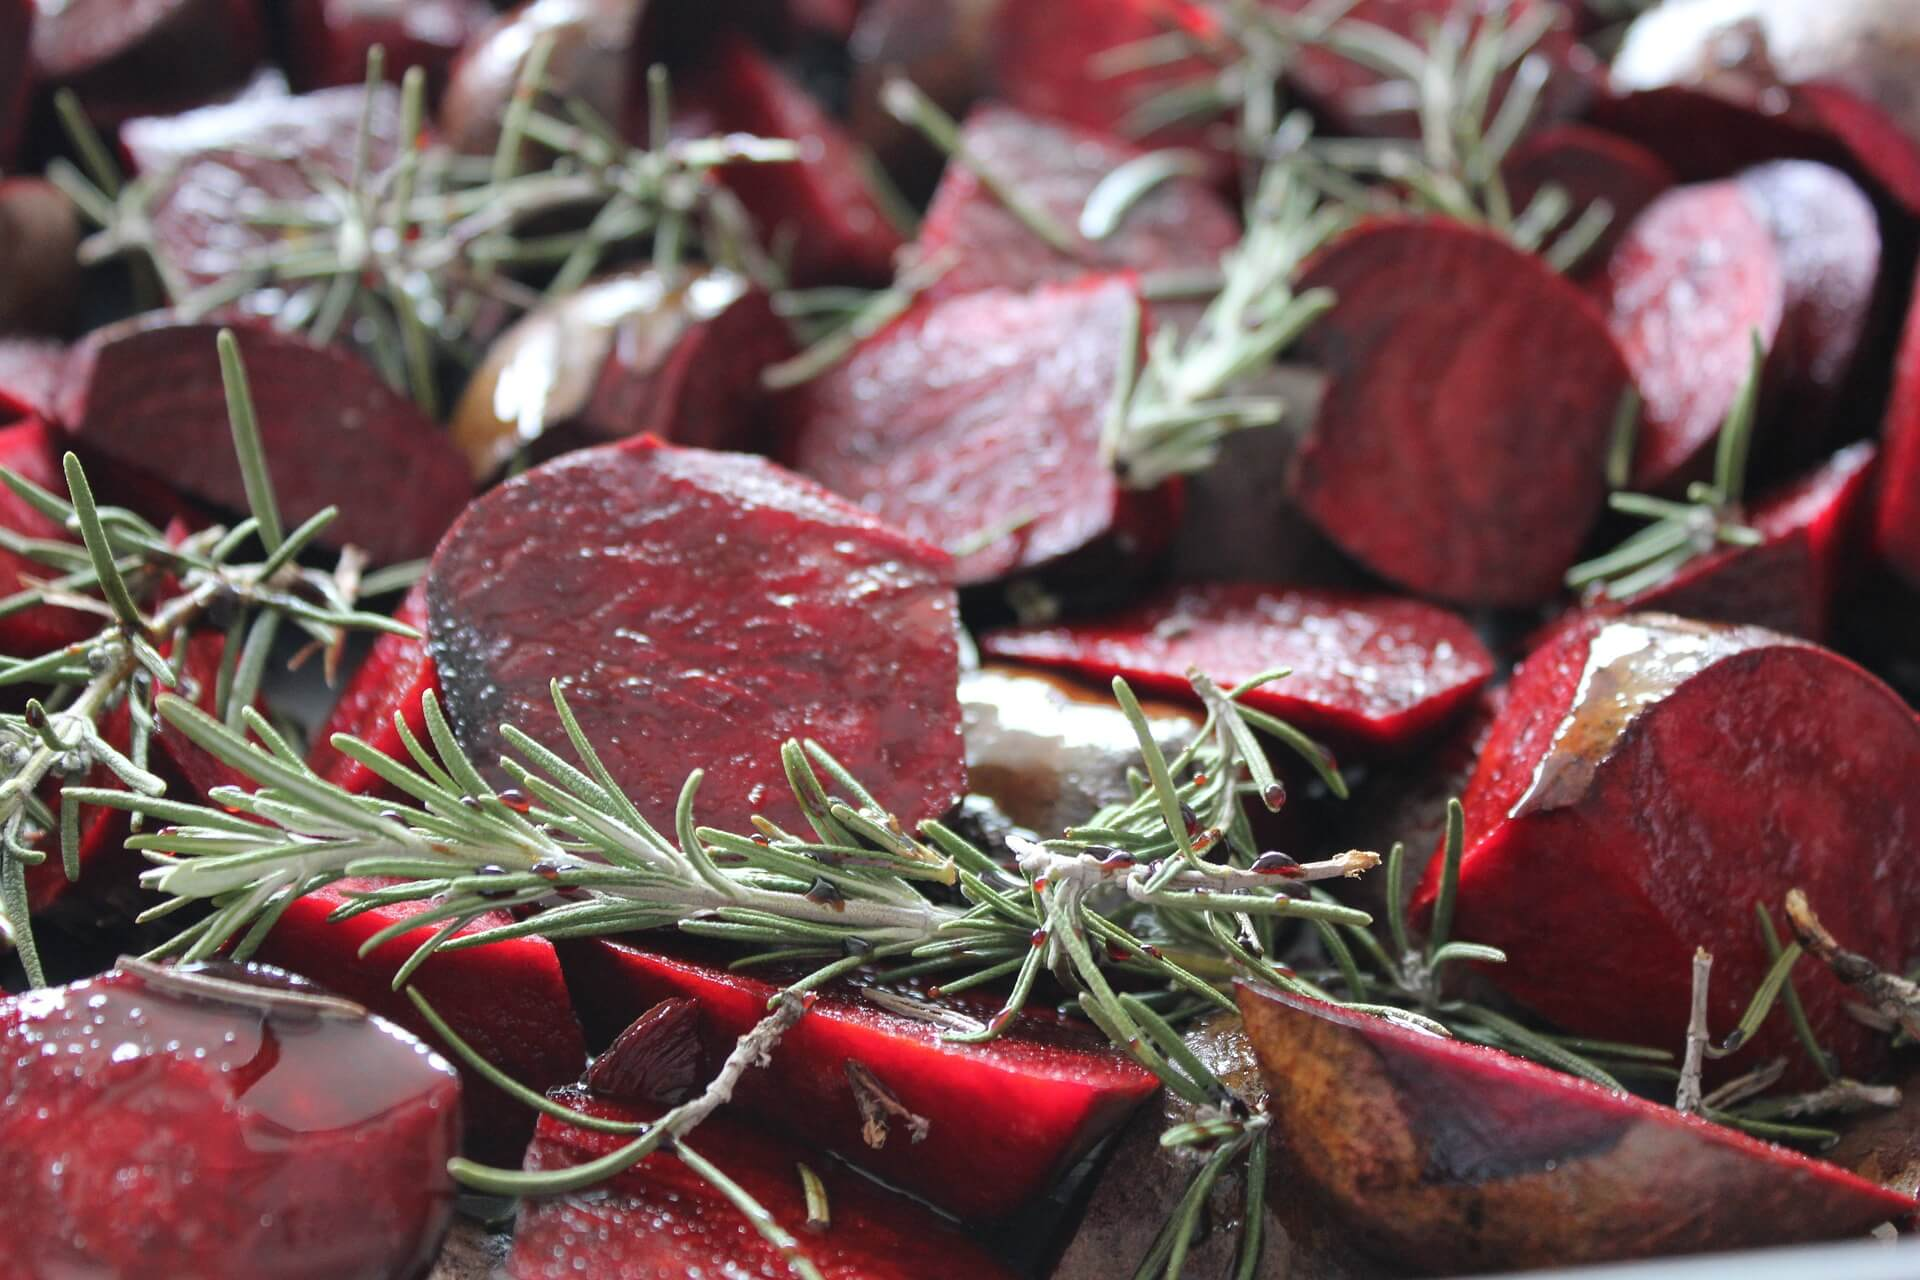 Beets boost health